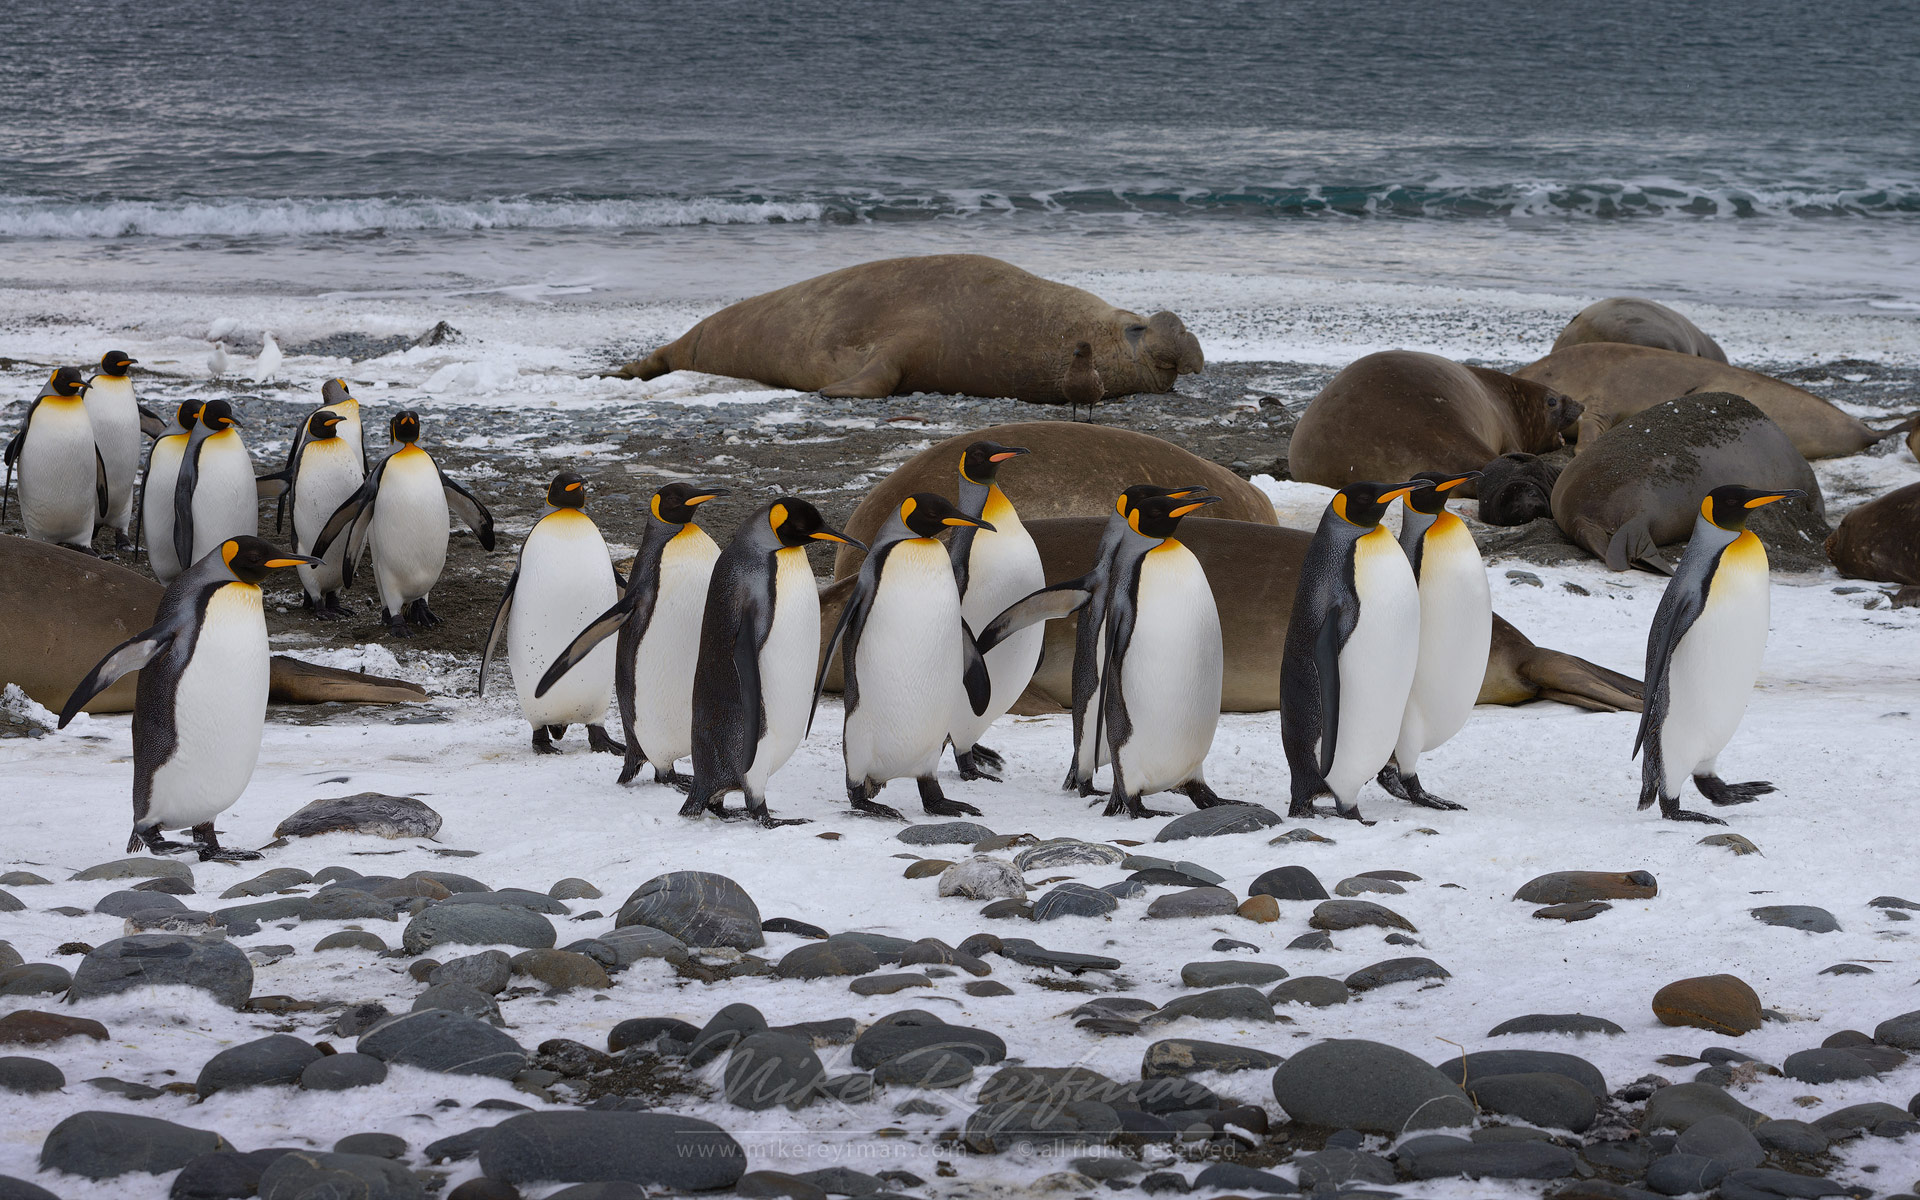 Southern Elephant Seals (Mirounga leonina) and King Penguins (Aptenodytes patagonicus). Salisbury Plain, South Georgia, Sub-Antarctic.  - Southern-Elephant-Seals-Fur-Seals-South-Georgia-Sub-Antarctic - Mike Reyfman Photography